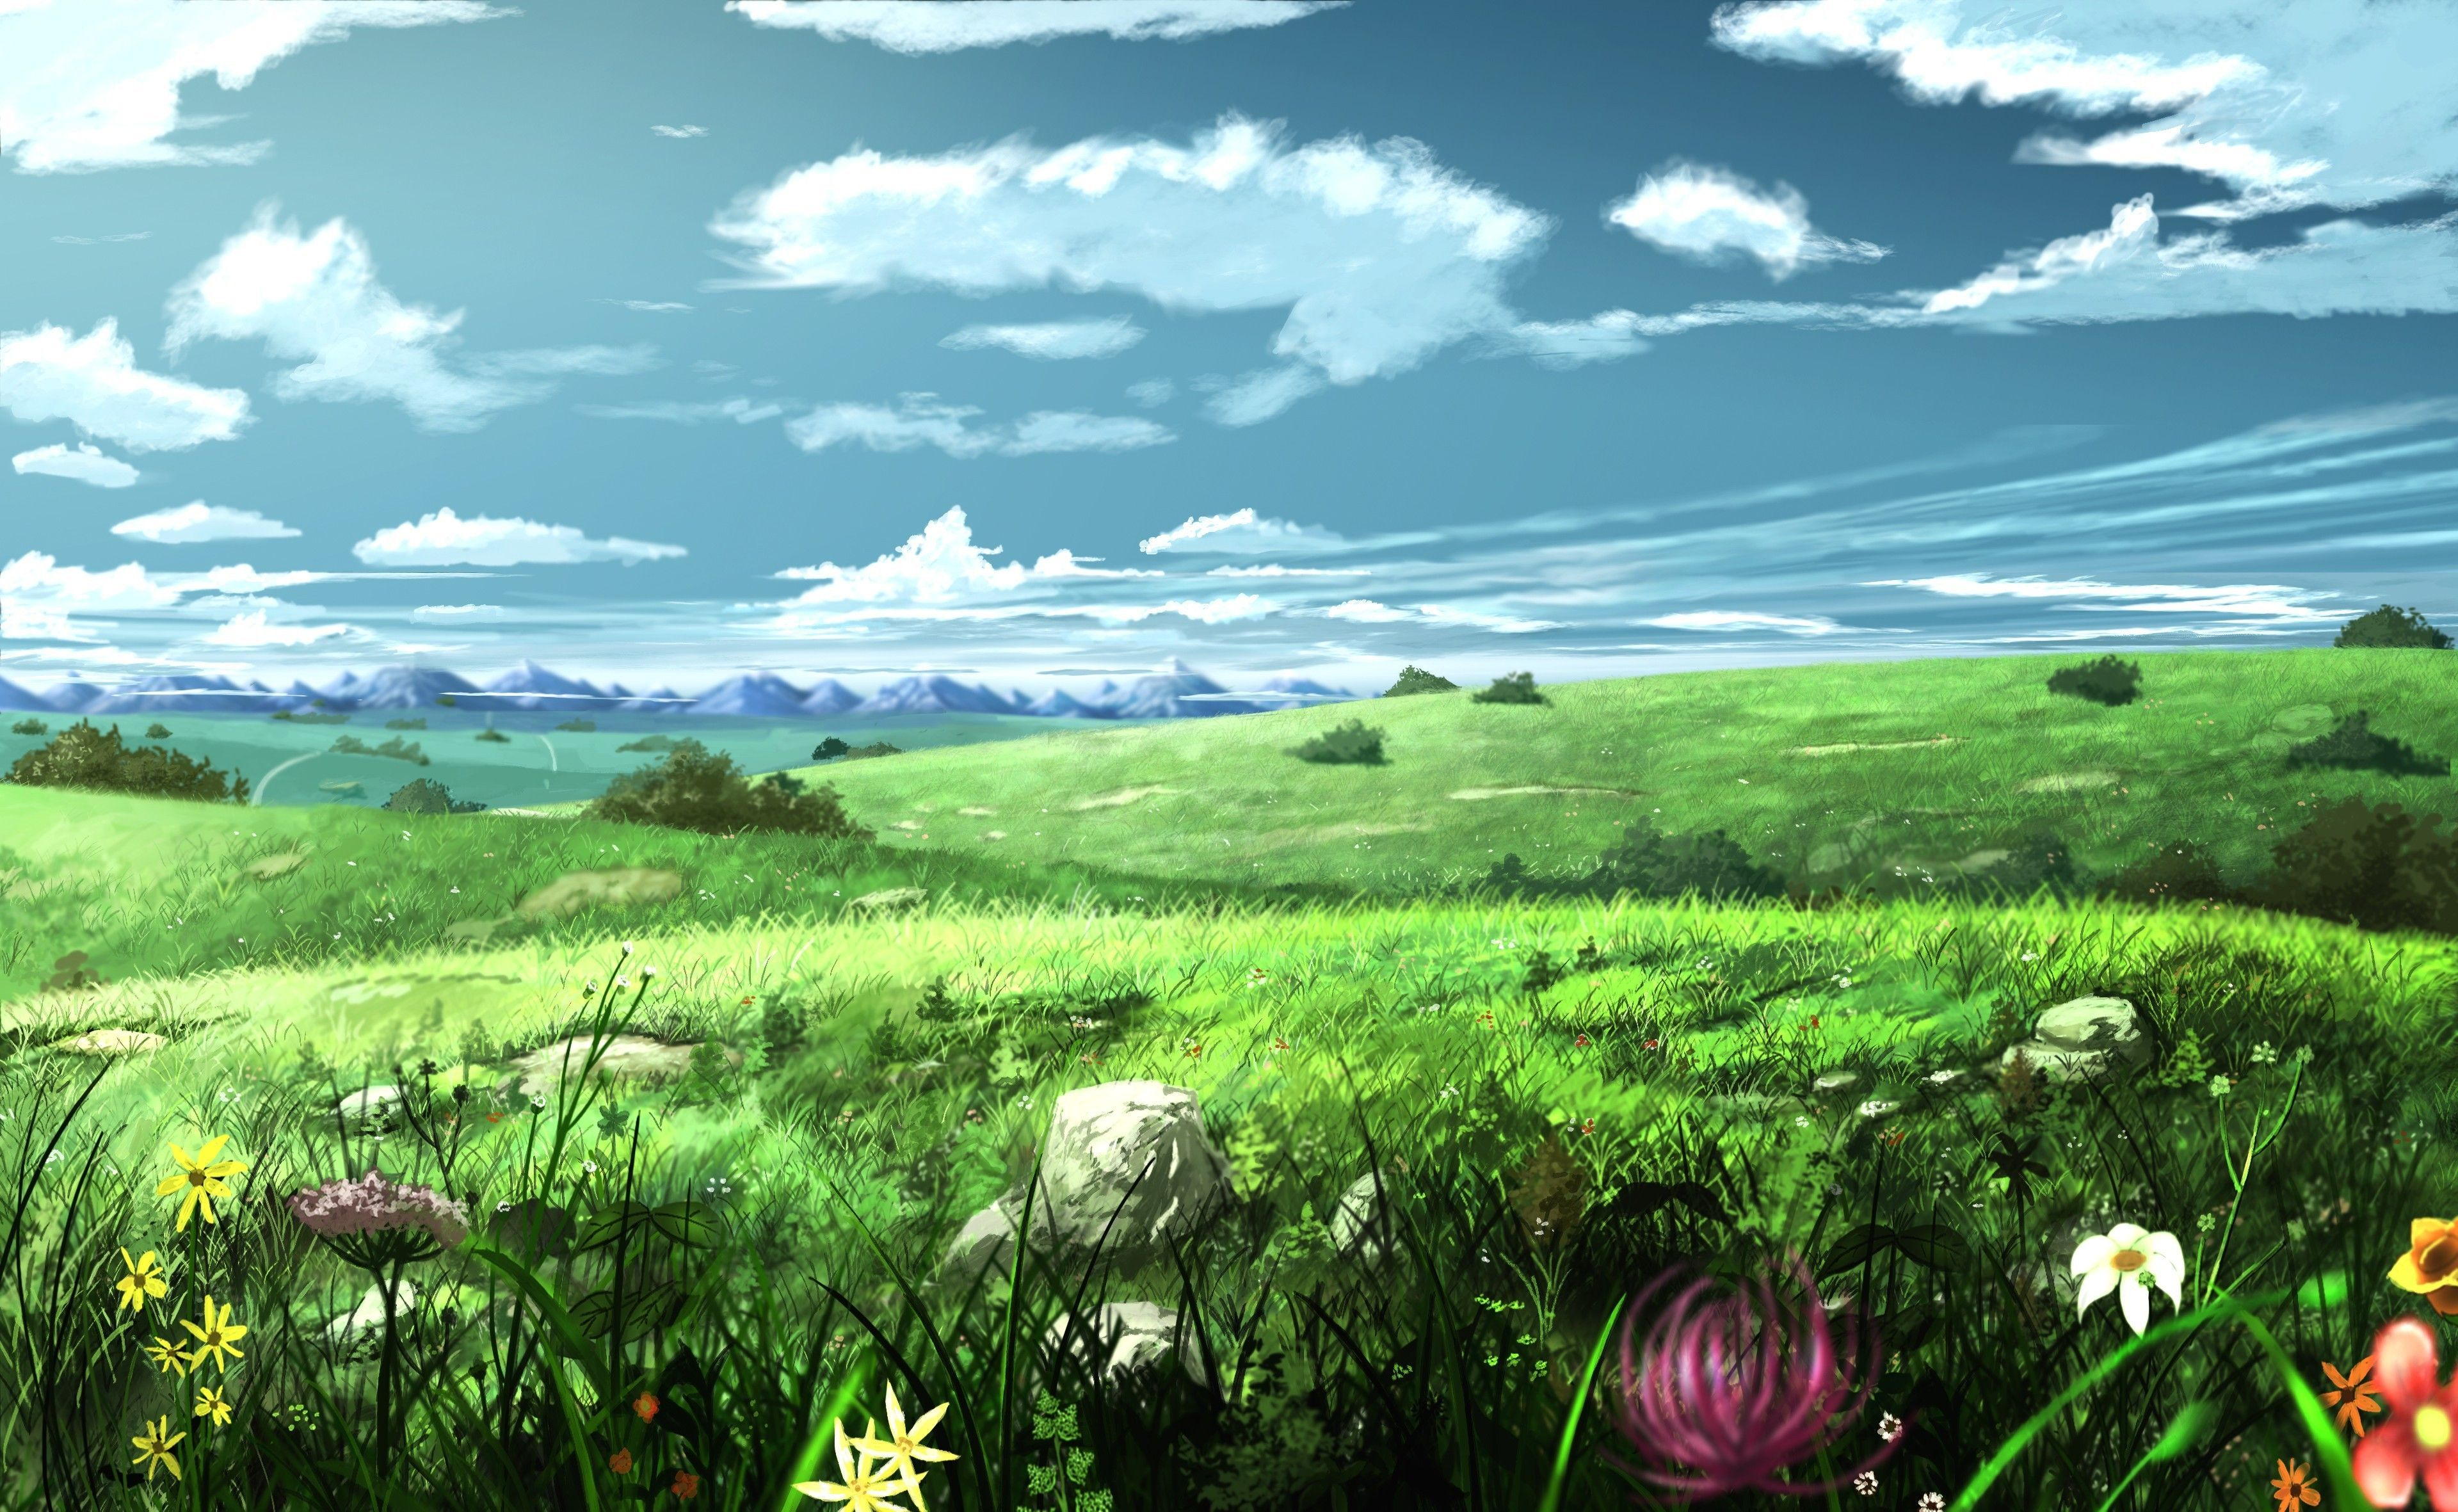 Anime Field Wallpapers Top Free Anime Field Backgrounds Wallpaperaccess